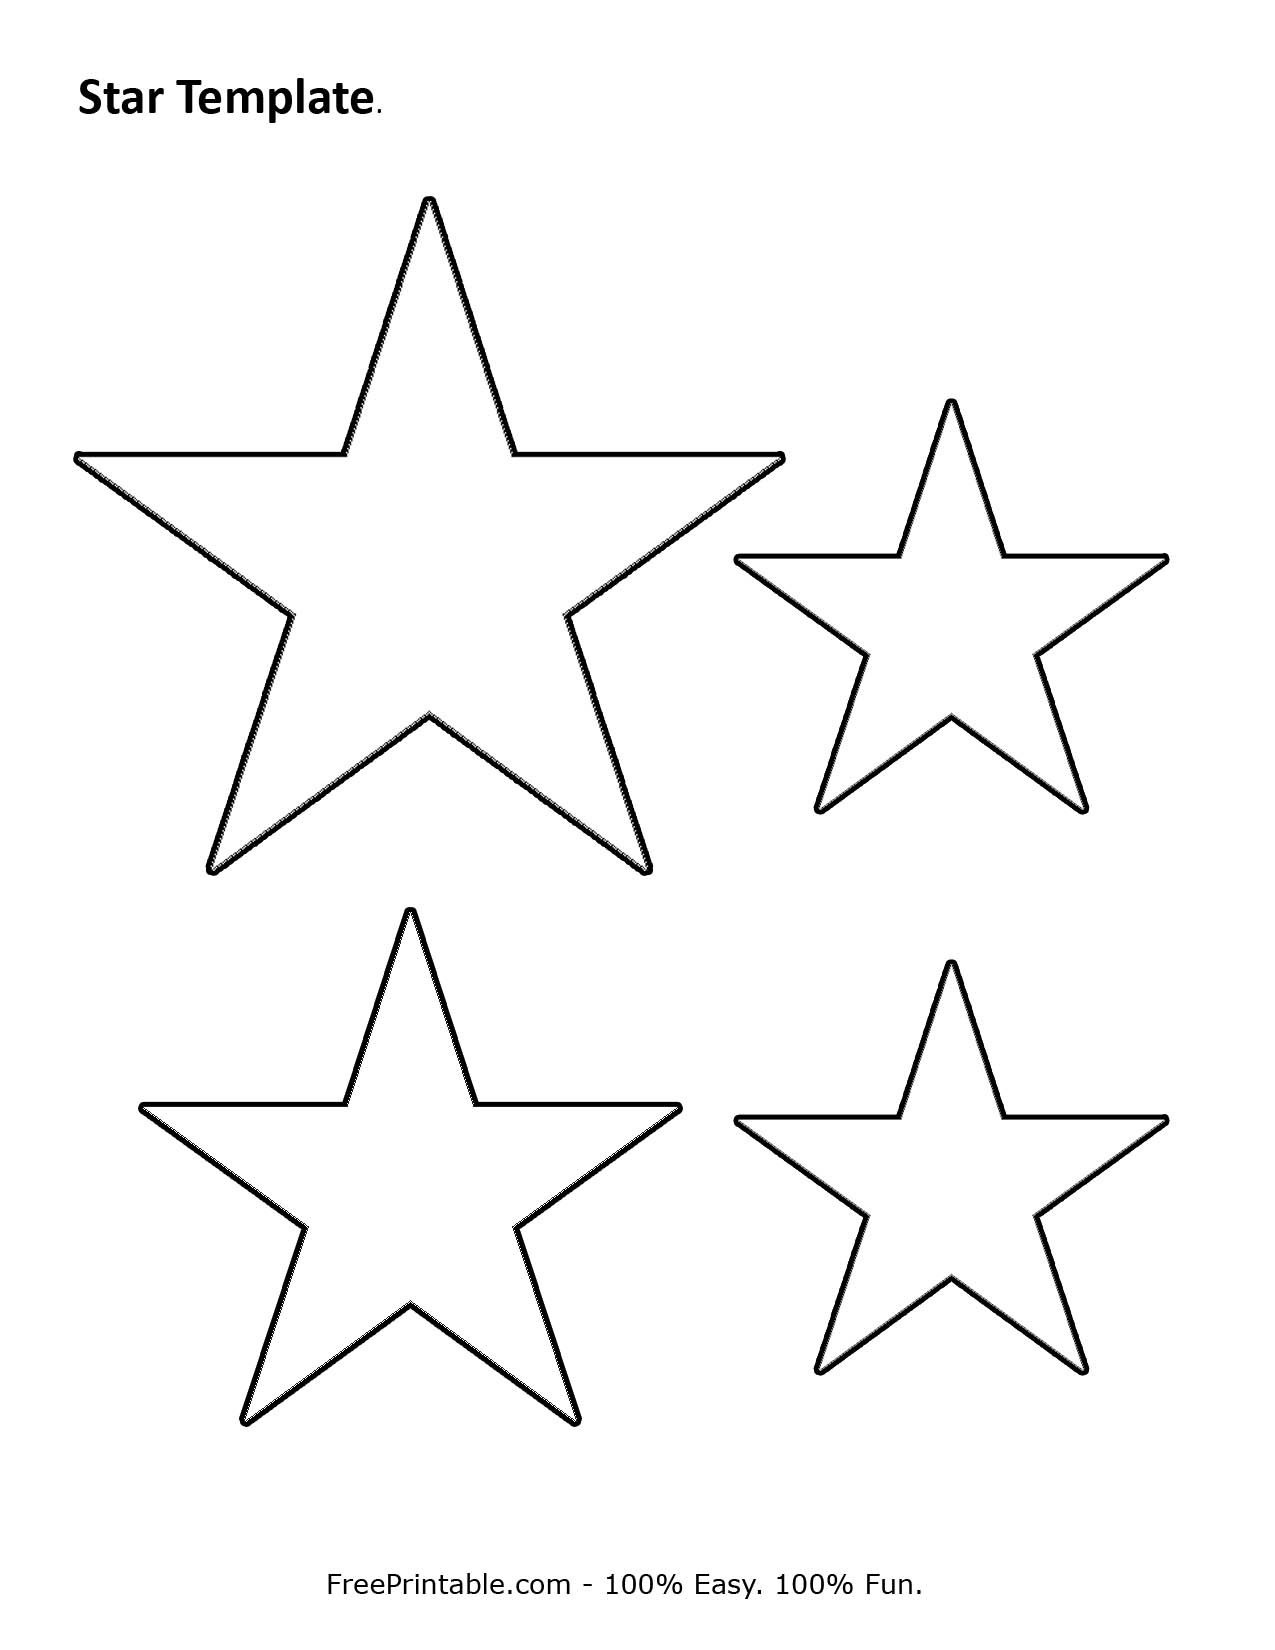 Customize Your Free Printable Star Template | Stencil | Star - Star Template Free Printable